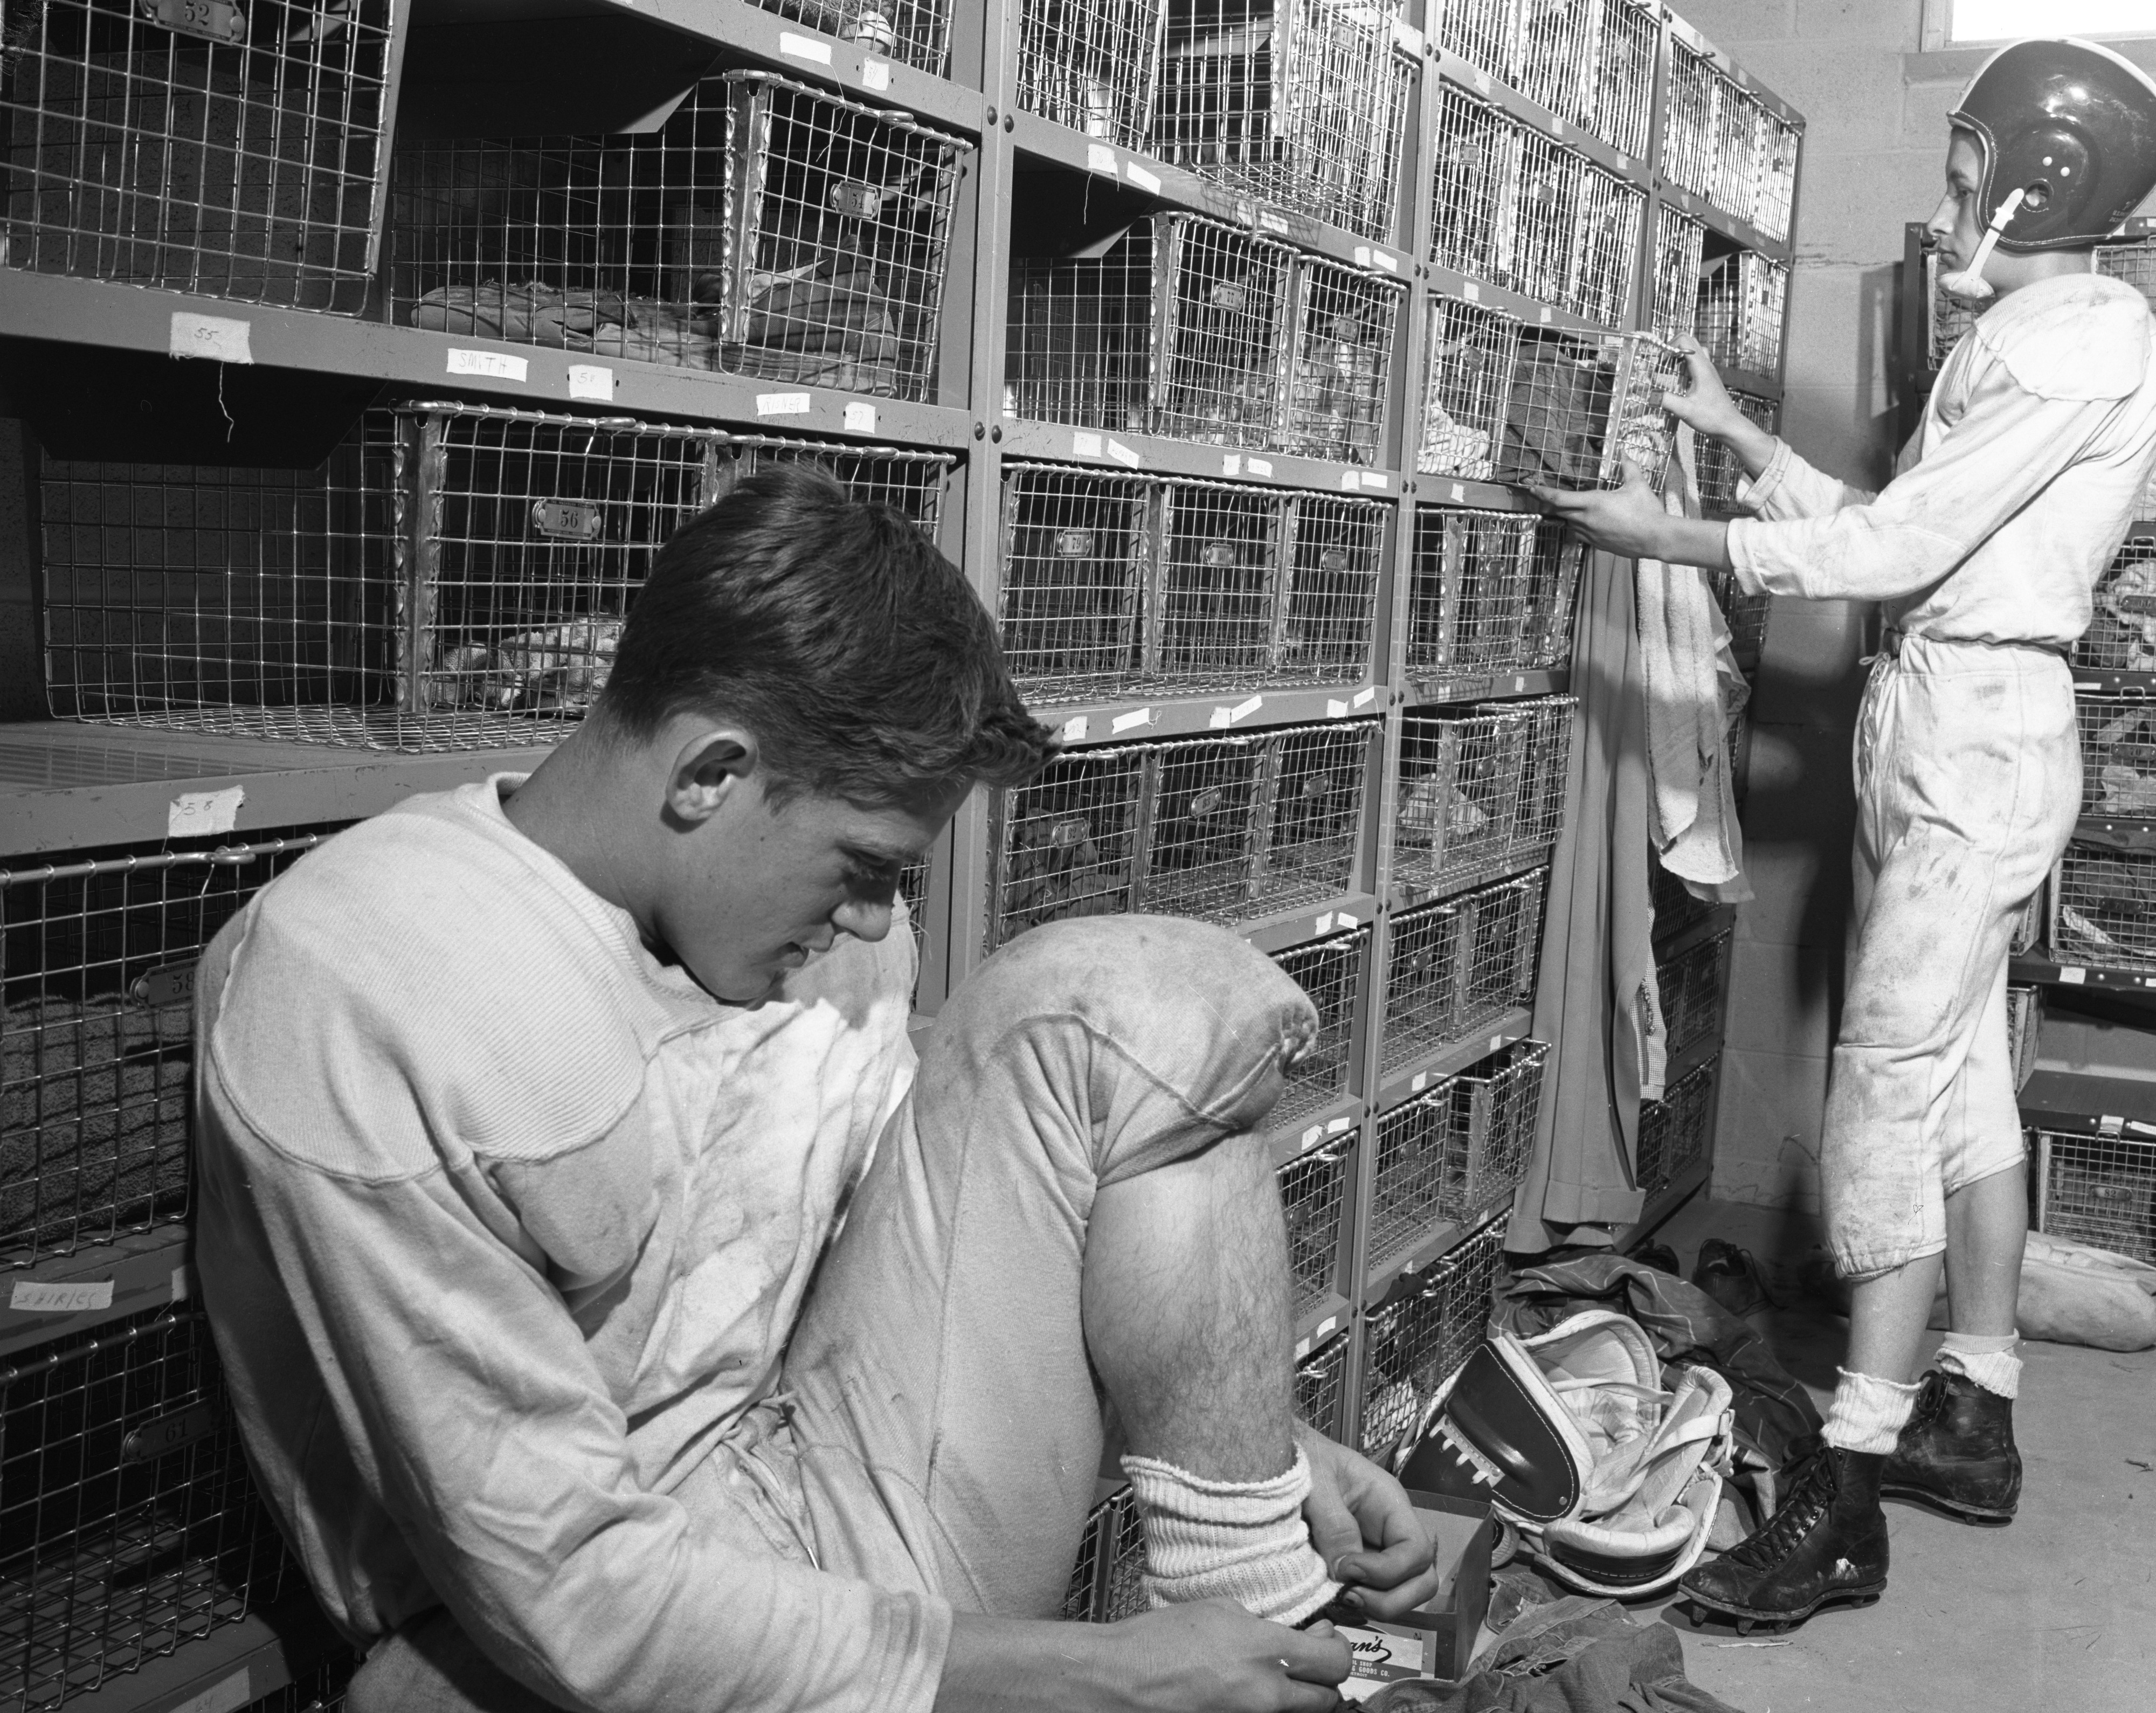 Jim Alexander and Dan Foster use baskets for lockers at Willow Run High, September 1954 image